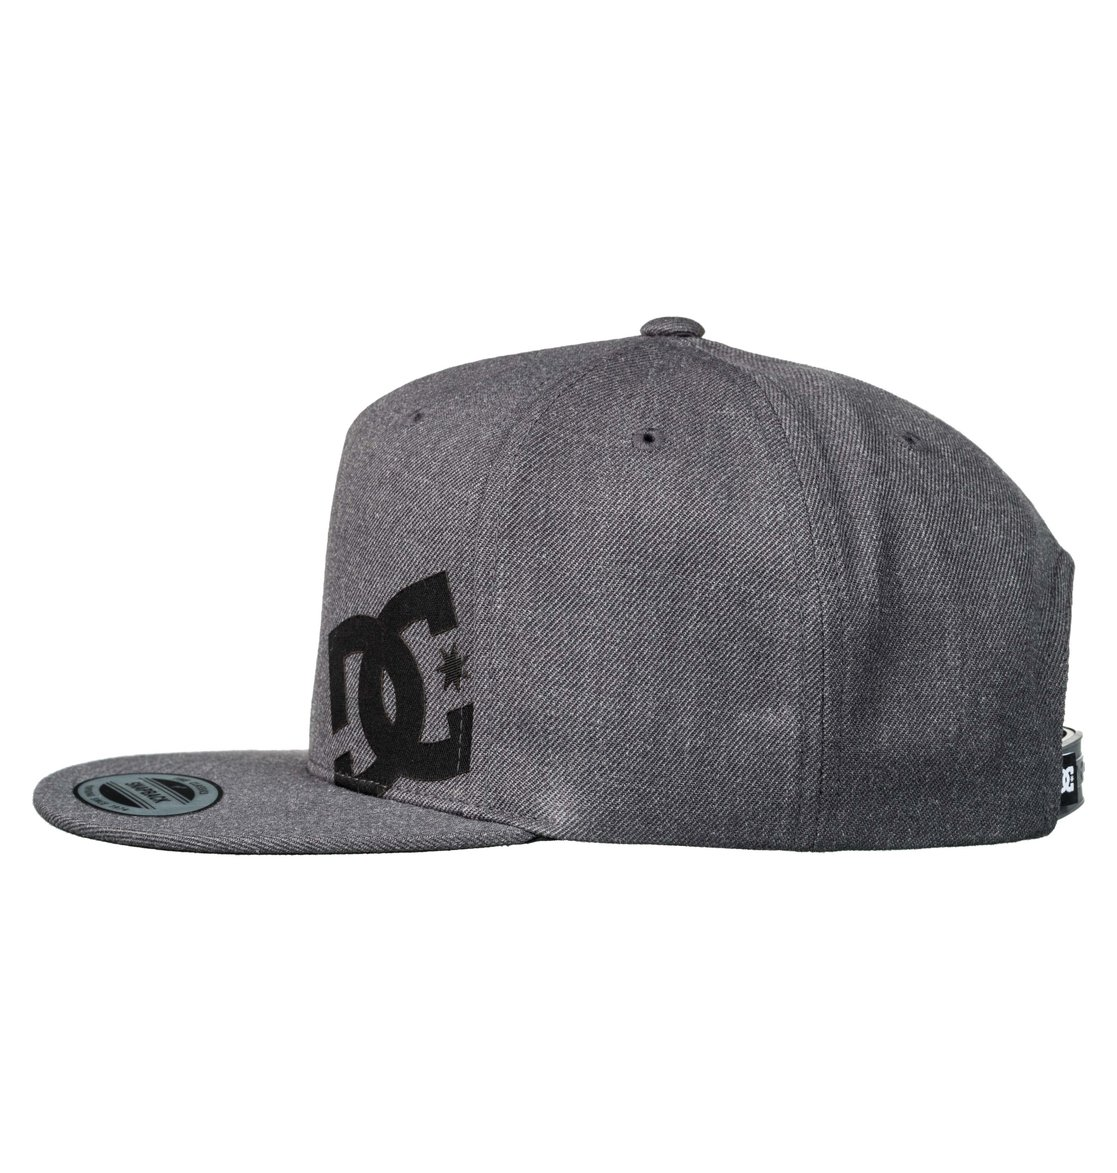 2e2556ff2f2 1 Heard Ya Snapback Hat ADYHA03494 DC Shoes